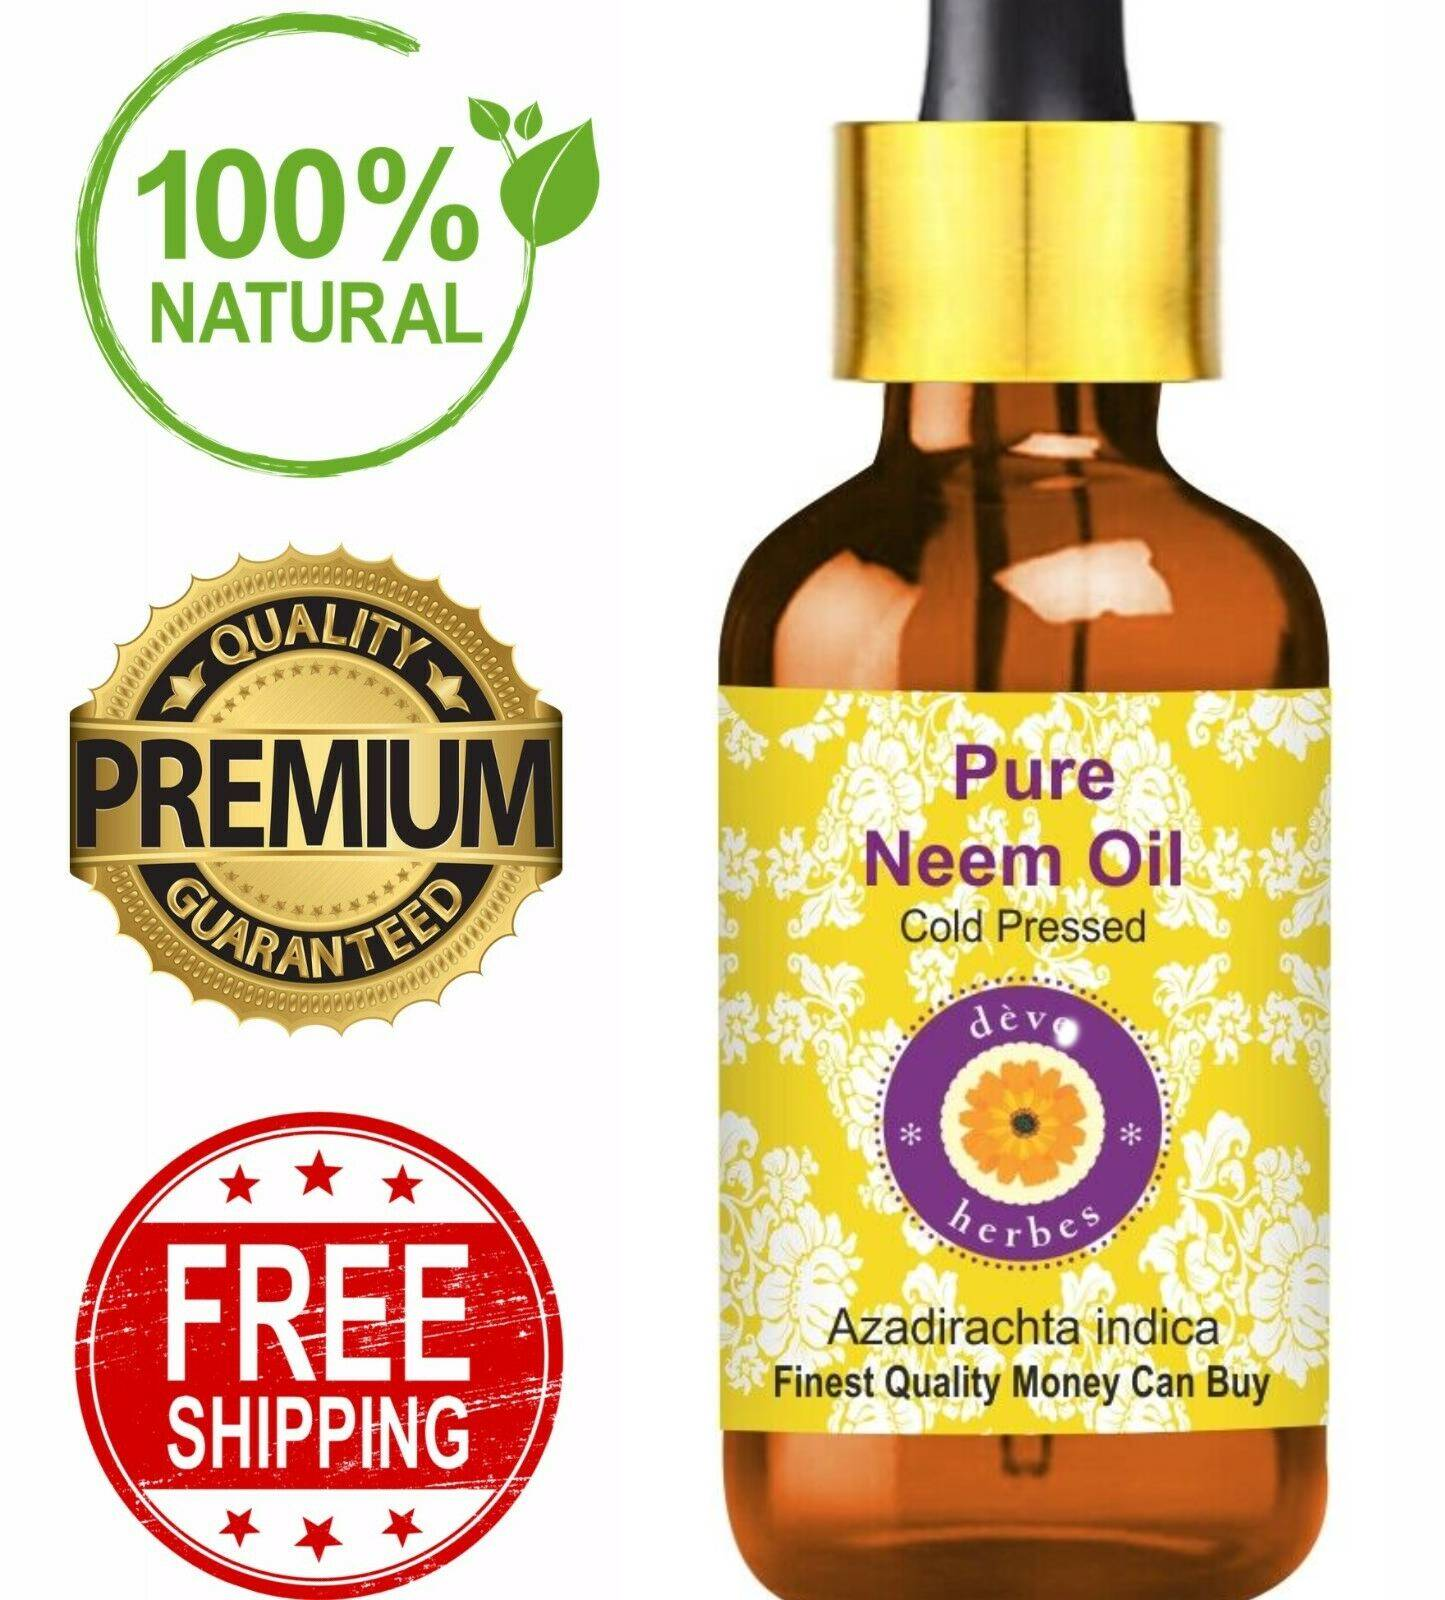 Pure Organic Neem Oil for Skin Hair PREMIUM QUALITY  Virgin 100% Pure Raw Unrefined Cold Pressed 5ML